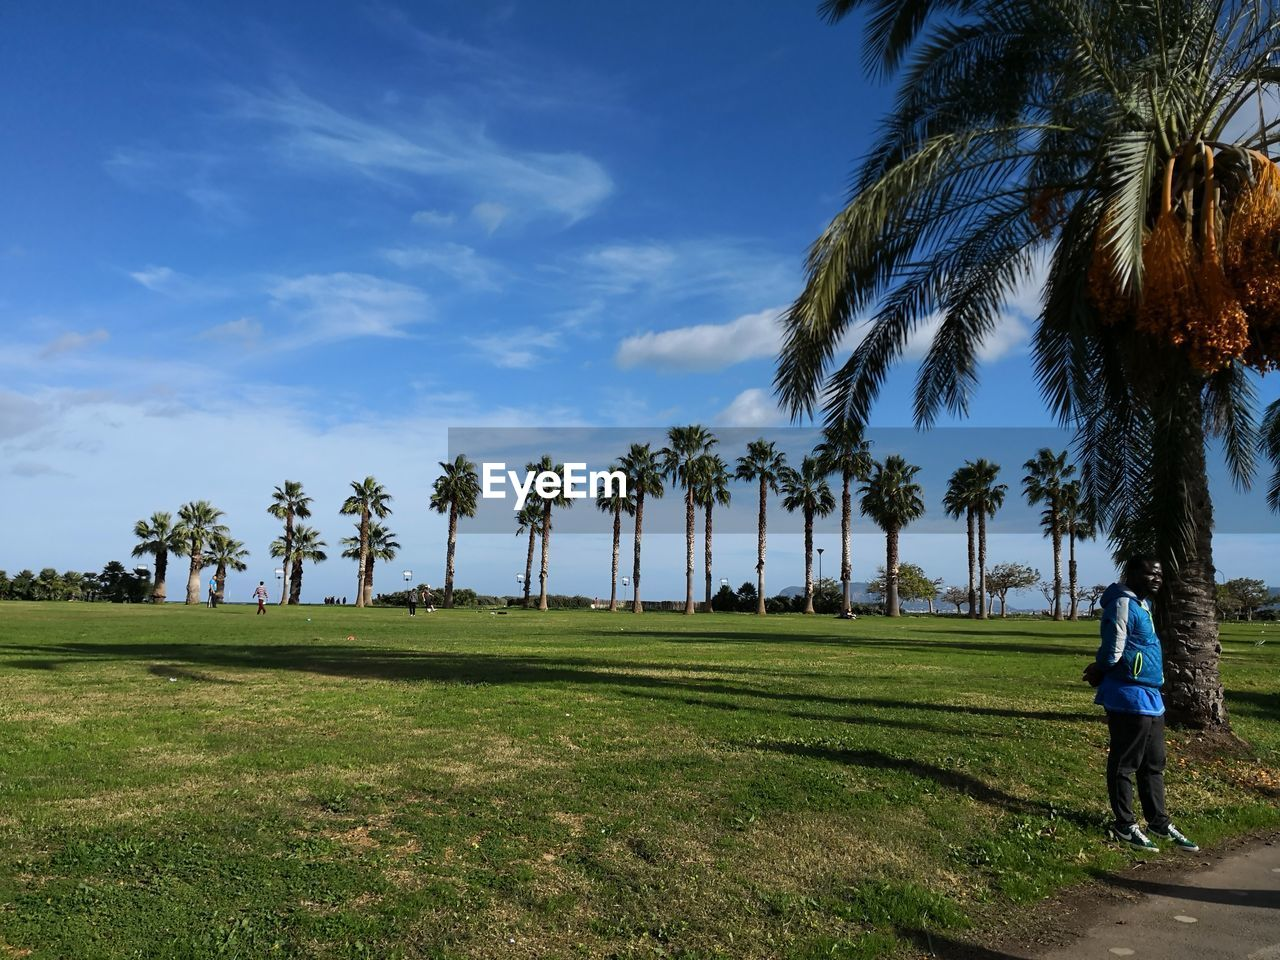 plant, sky, tree, grass, real people, one person, green color, field, leisure activity, nature, land, full length, palm tree, growth, tropical climate, rear view, beauty in nature, cloud - sky, lifestyles, outdoors